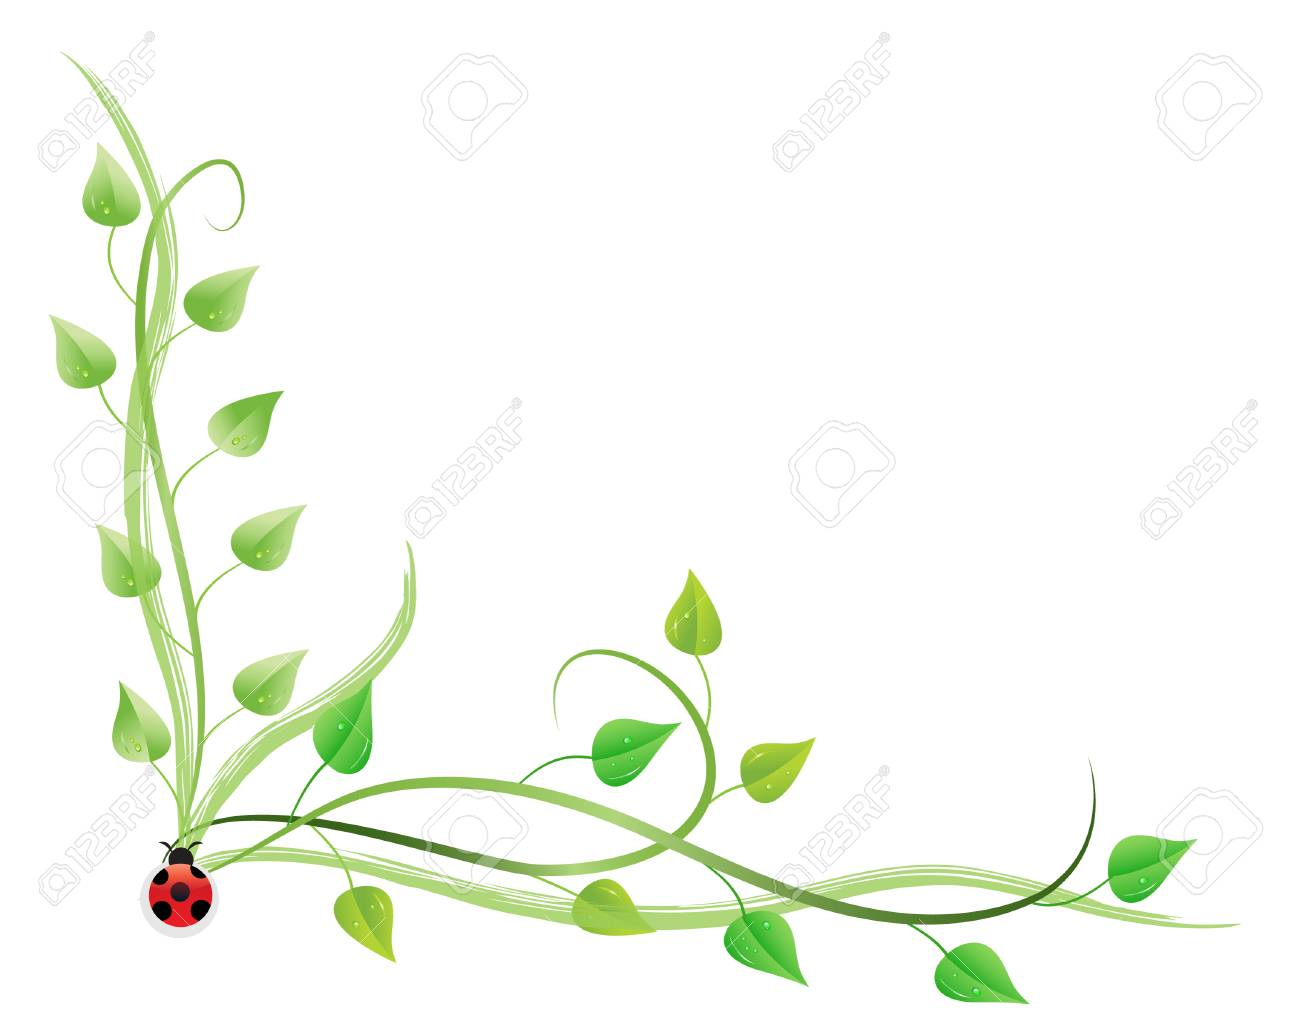 Vector Illustration Of Pothos On Vines Isolated Royalty Free Cliparts Vectors And Stock Illustration Image 4244436